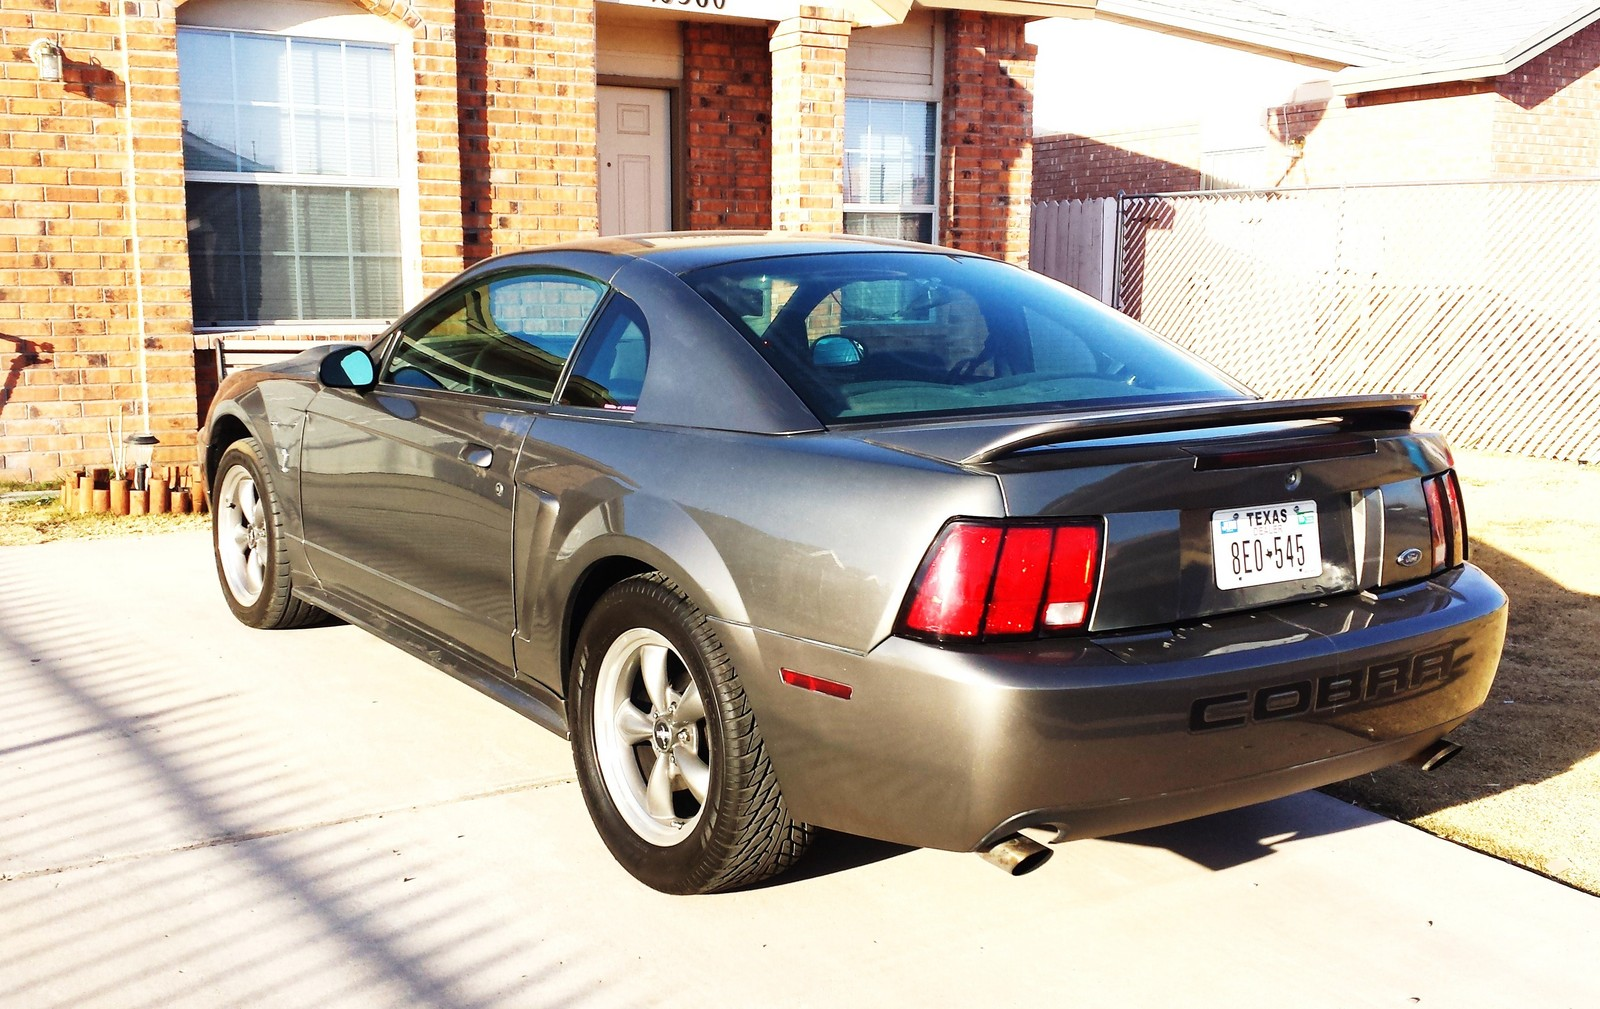 2000 Ford Mustang GT Kenne Bell Supercharged 1/4 mile trap